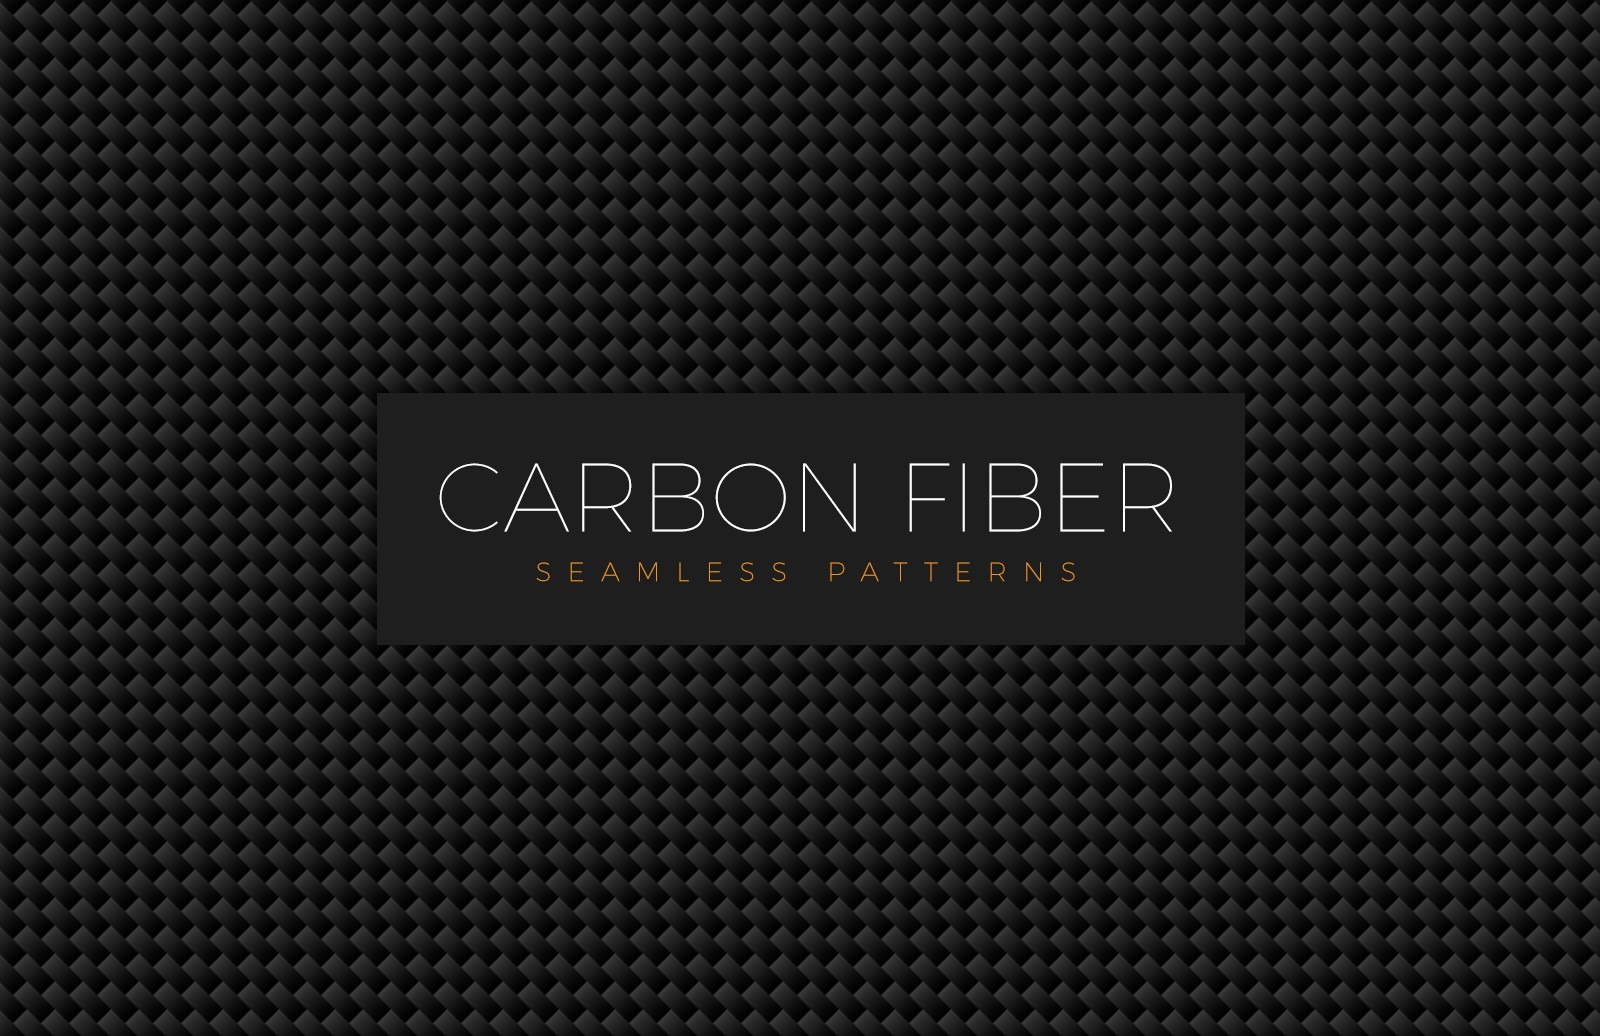 Seamless Carbon Fiber Patterns